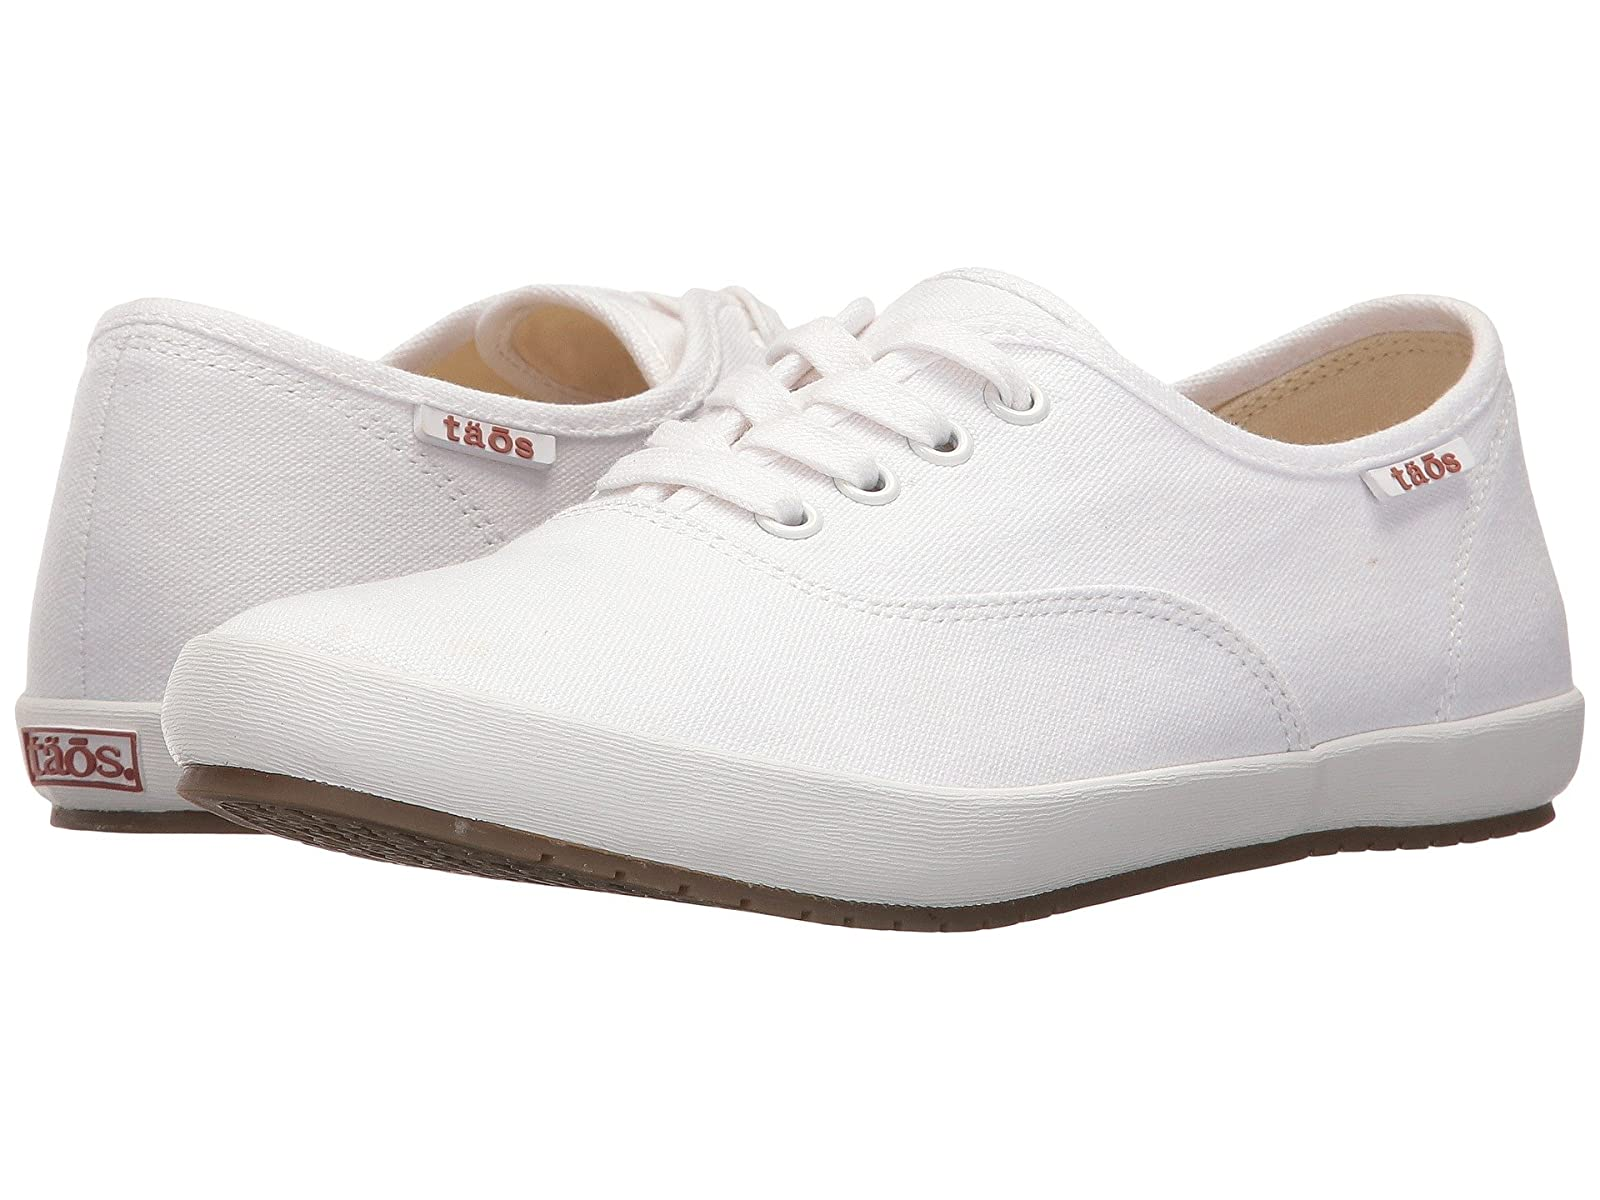 Taos Footwear Guest StarAtmospheric grades have affordable shoes